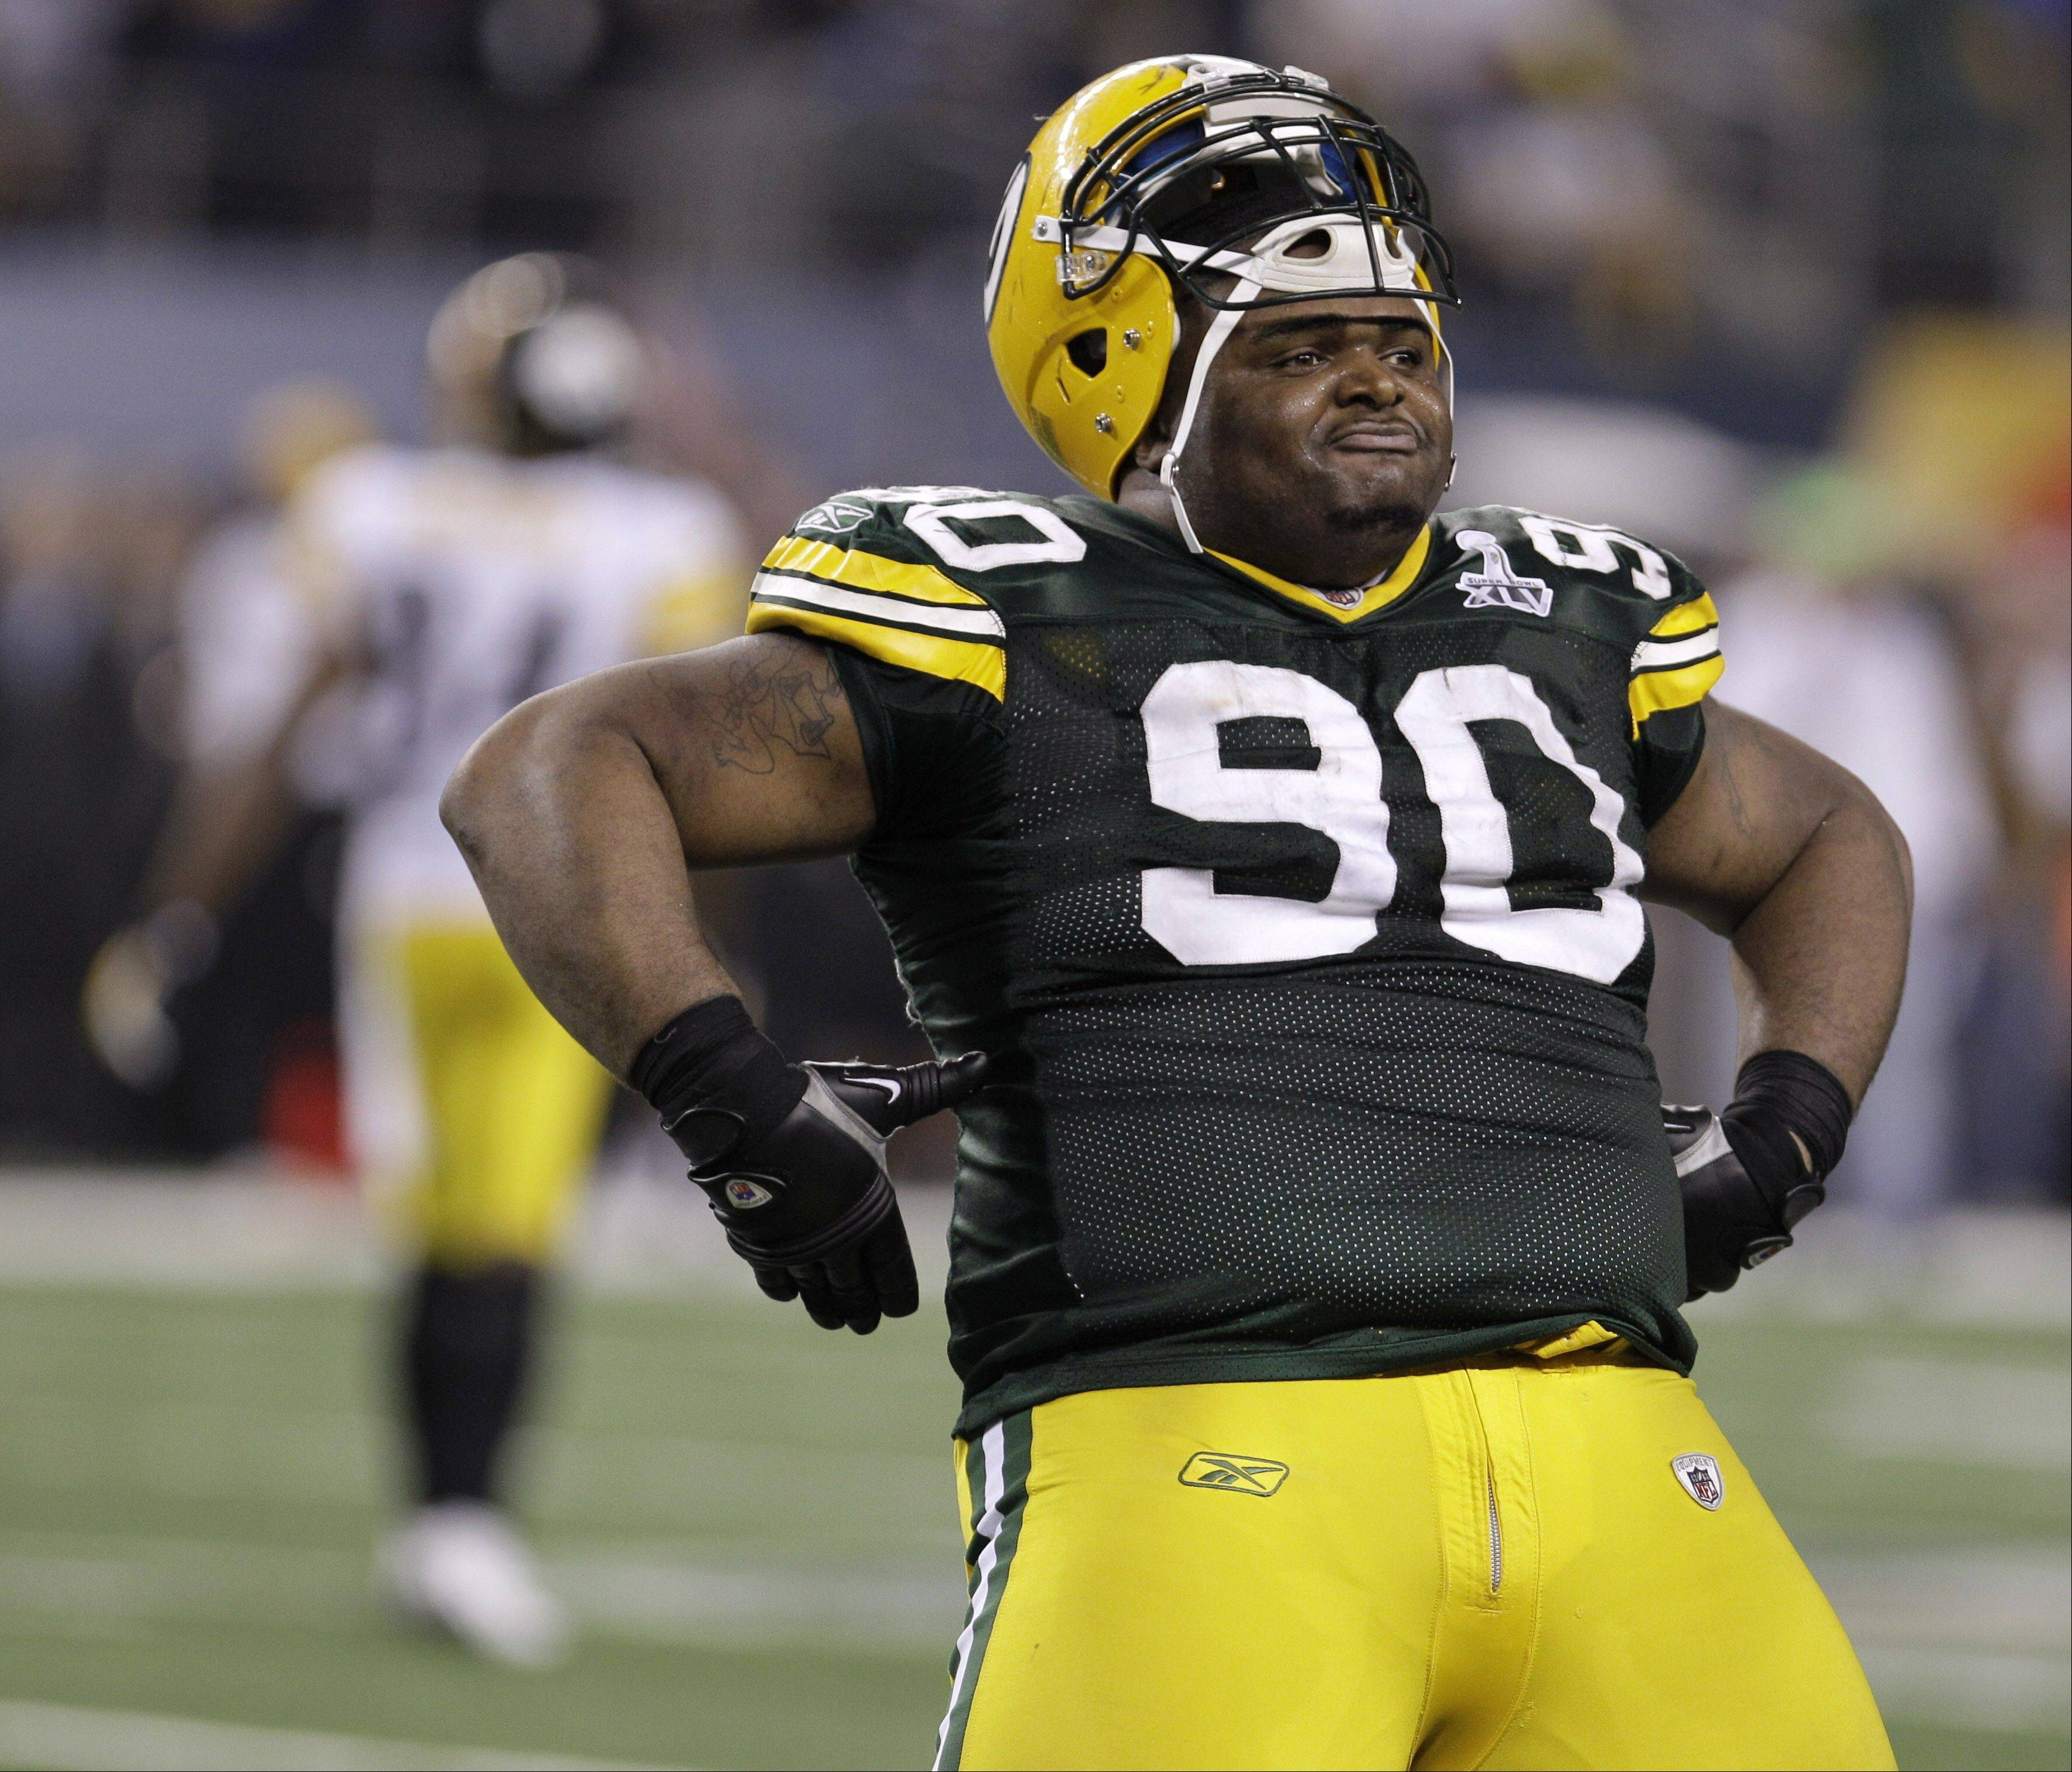 Green Bay Packers tackle B.J. Raji made a sizable comment when he stepped into the new Cowboys Stadium for the first time.